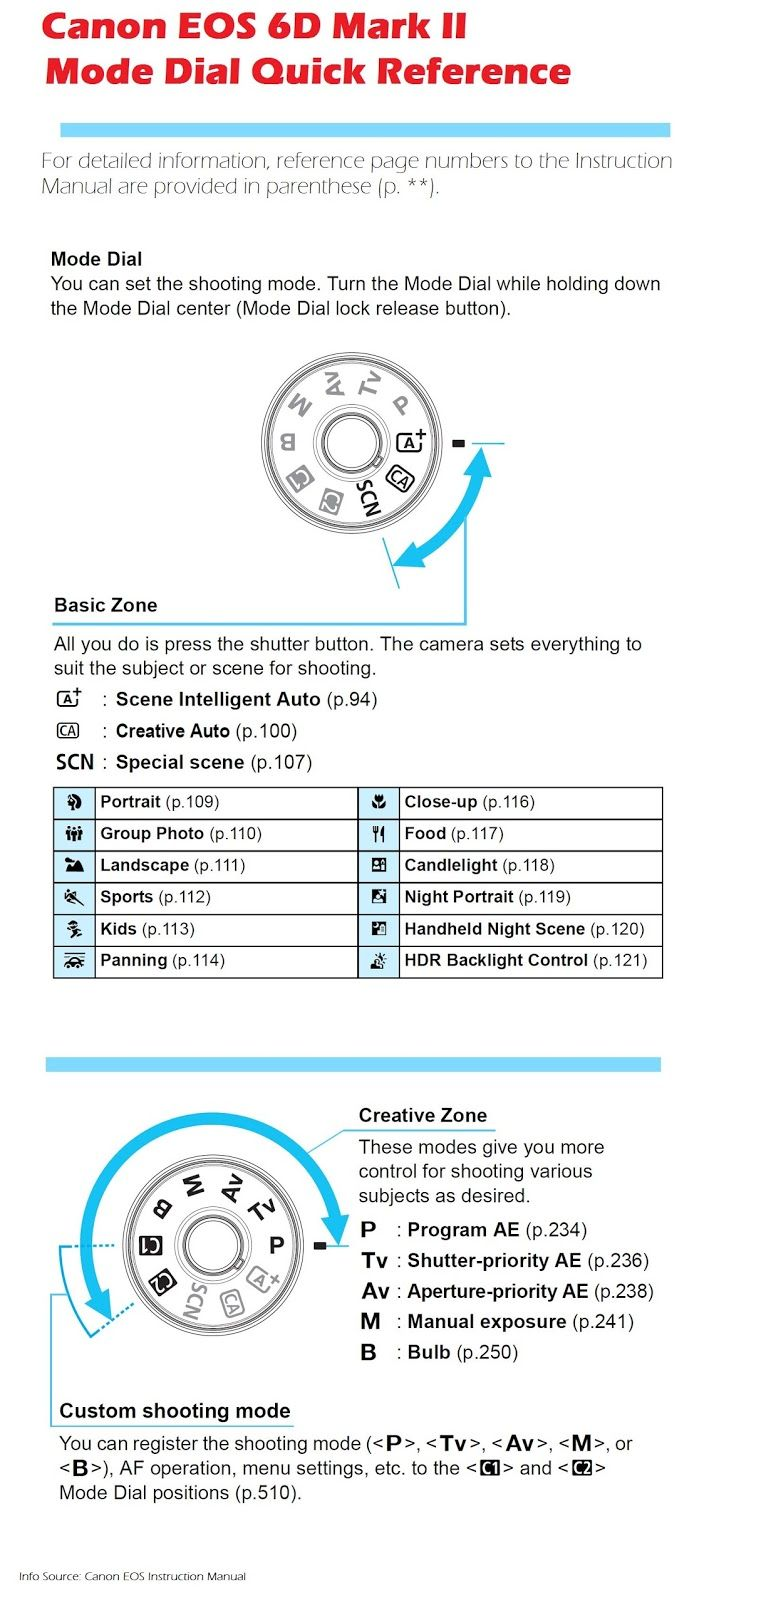 canon eos 6d mark ii camera mode dial quick reference there s more of these useful resources just click on the image and check out the site [ 771 x 1600 Pixel ]